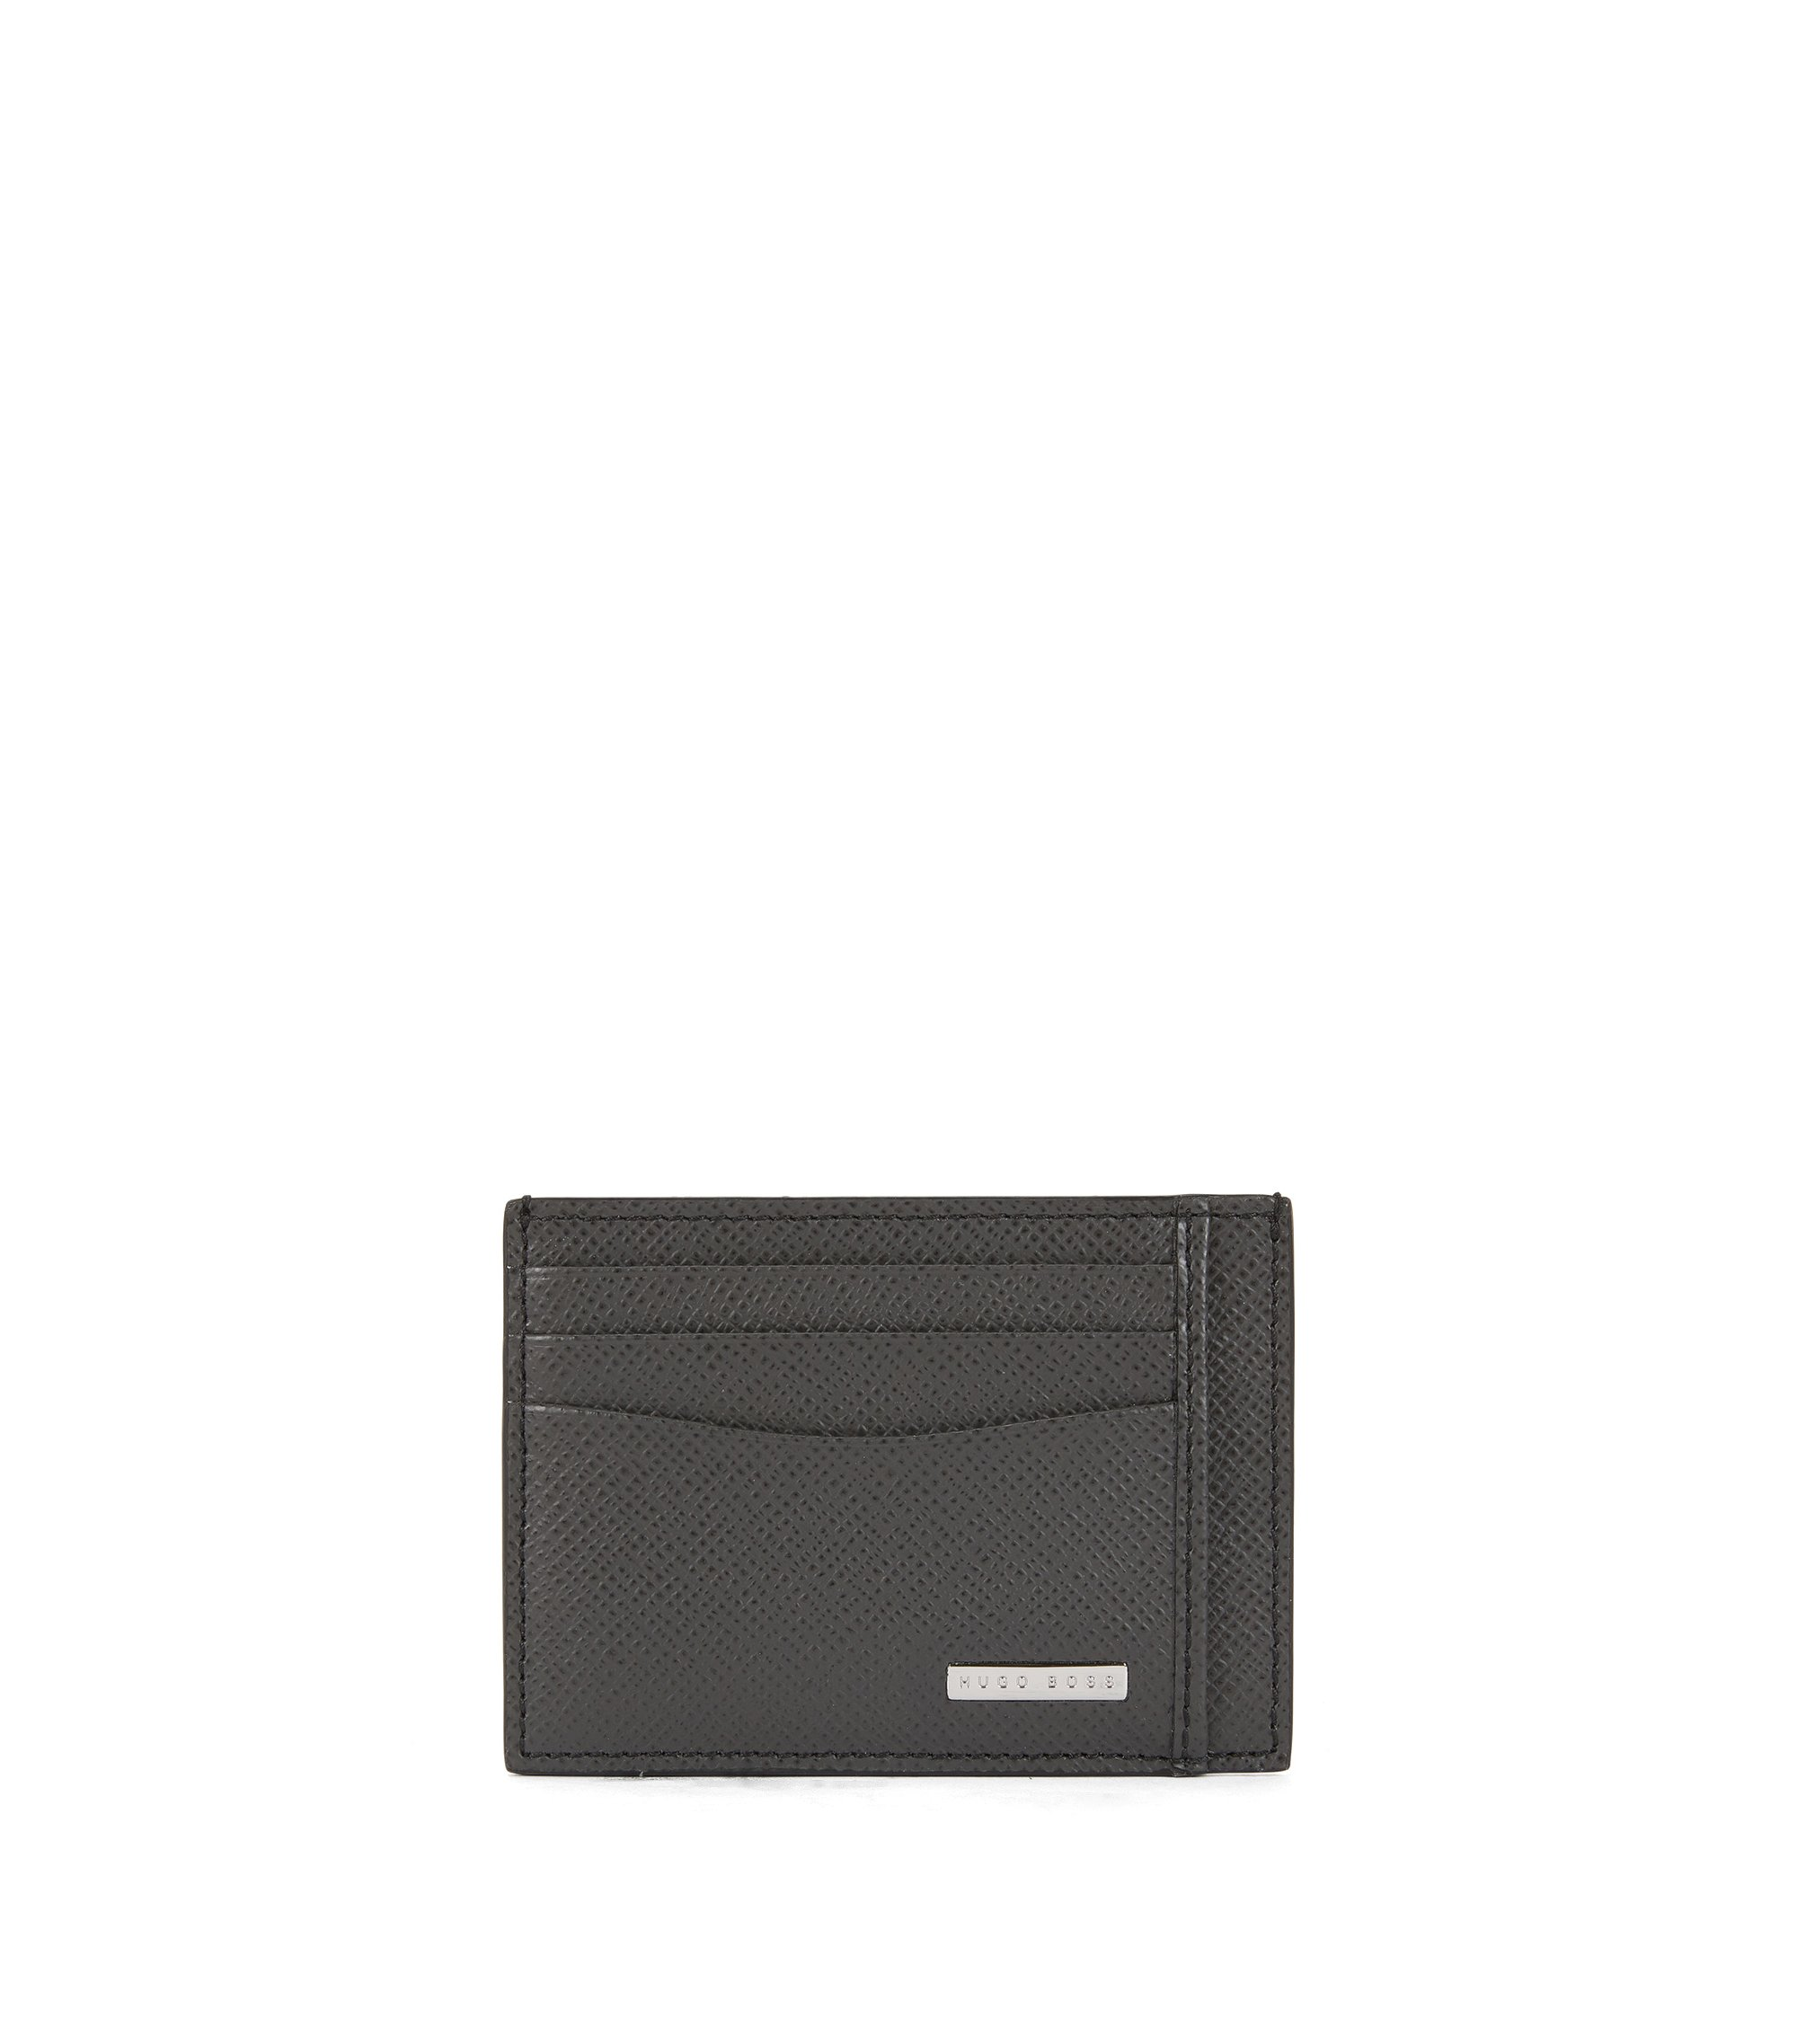 Signature Collection card holder in palmellato leather, Dark Grey